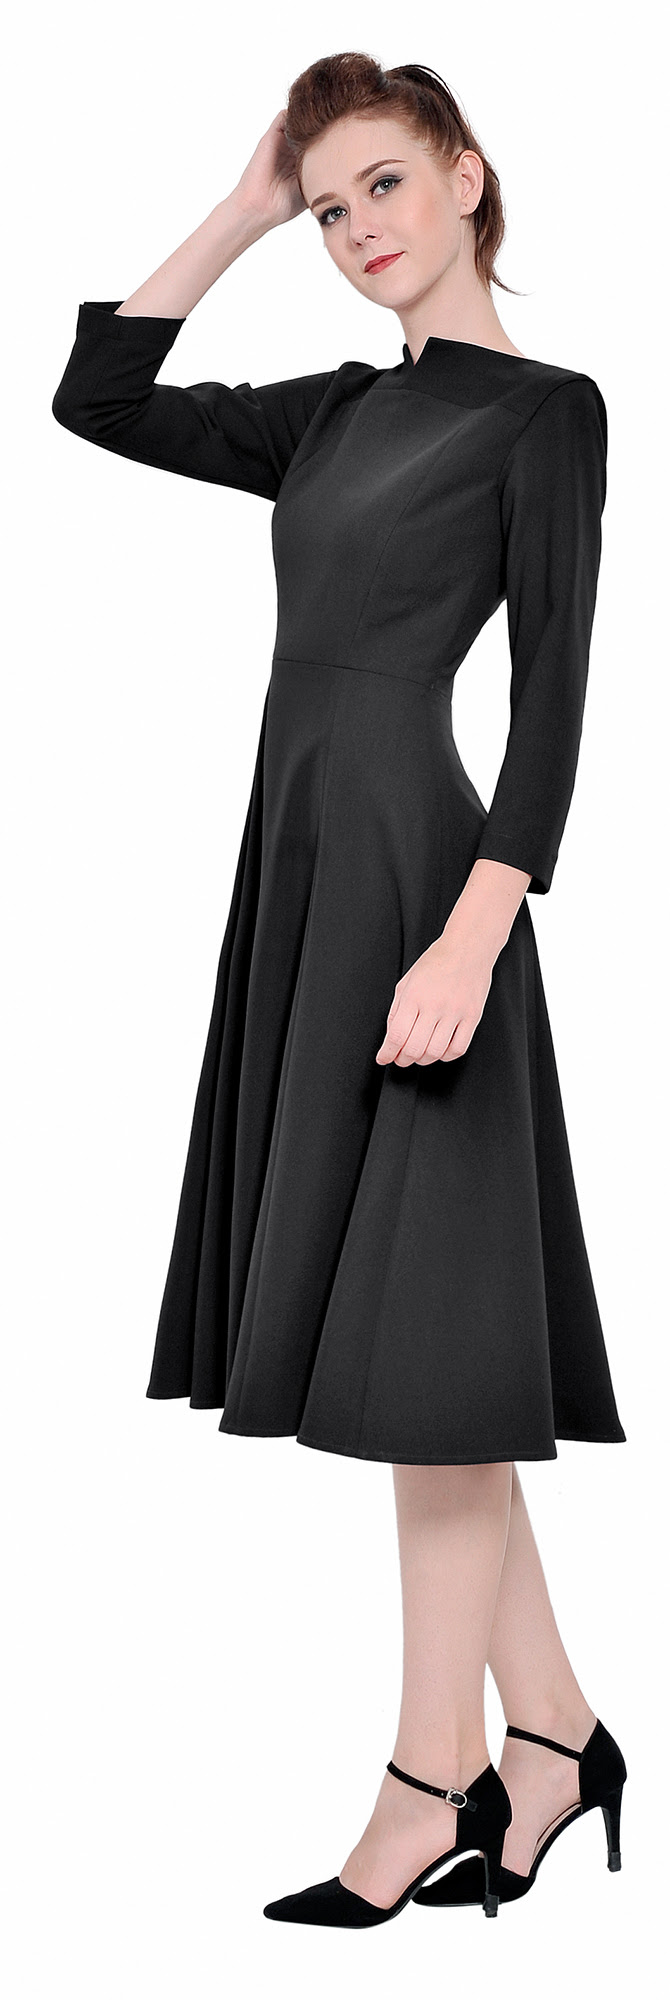 marycrafts womens elegant casual office business long